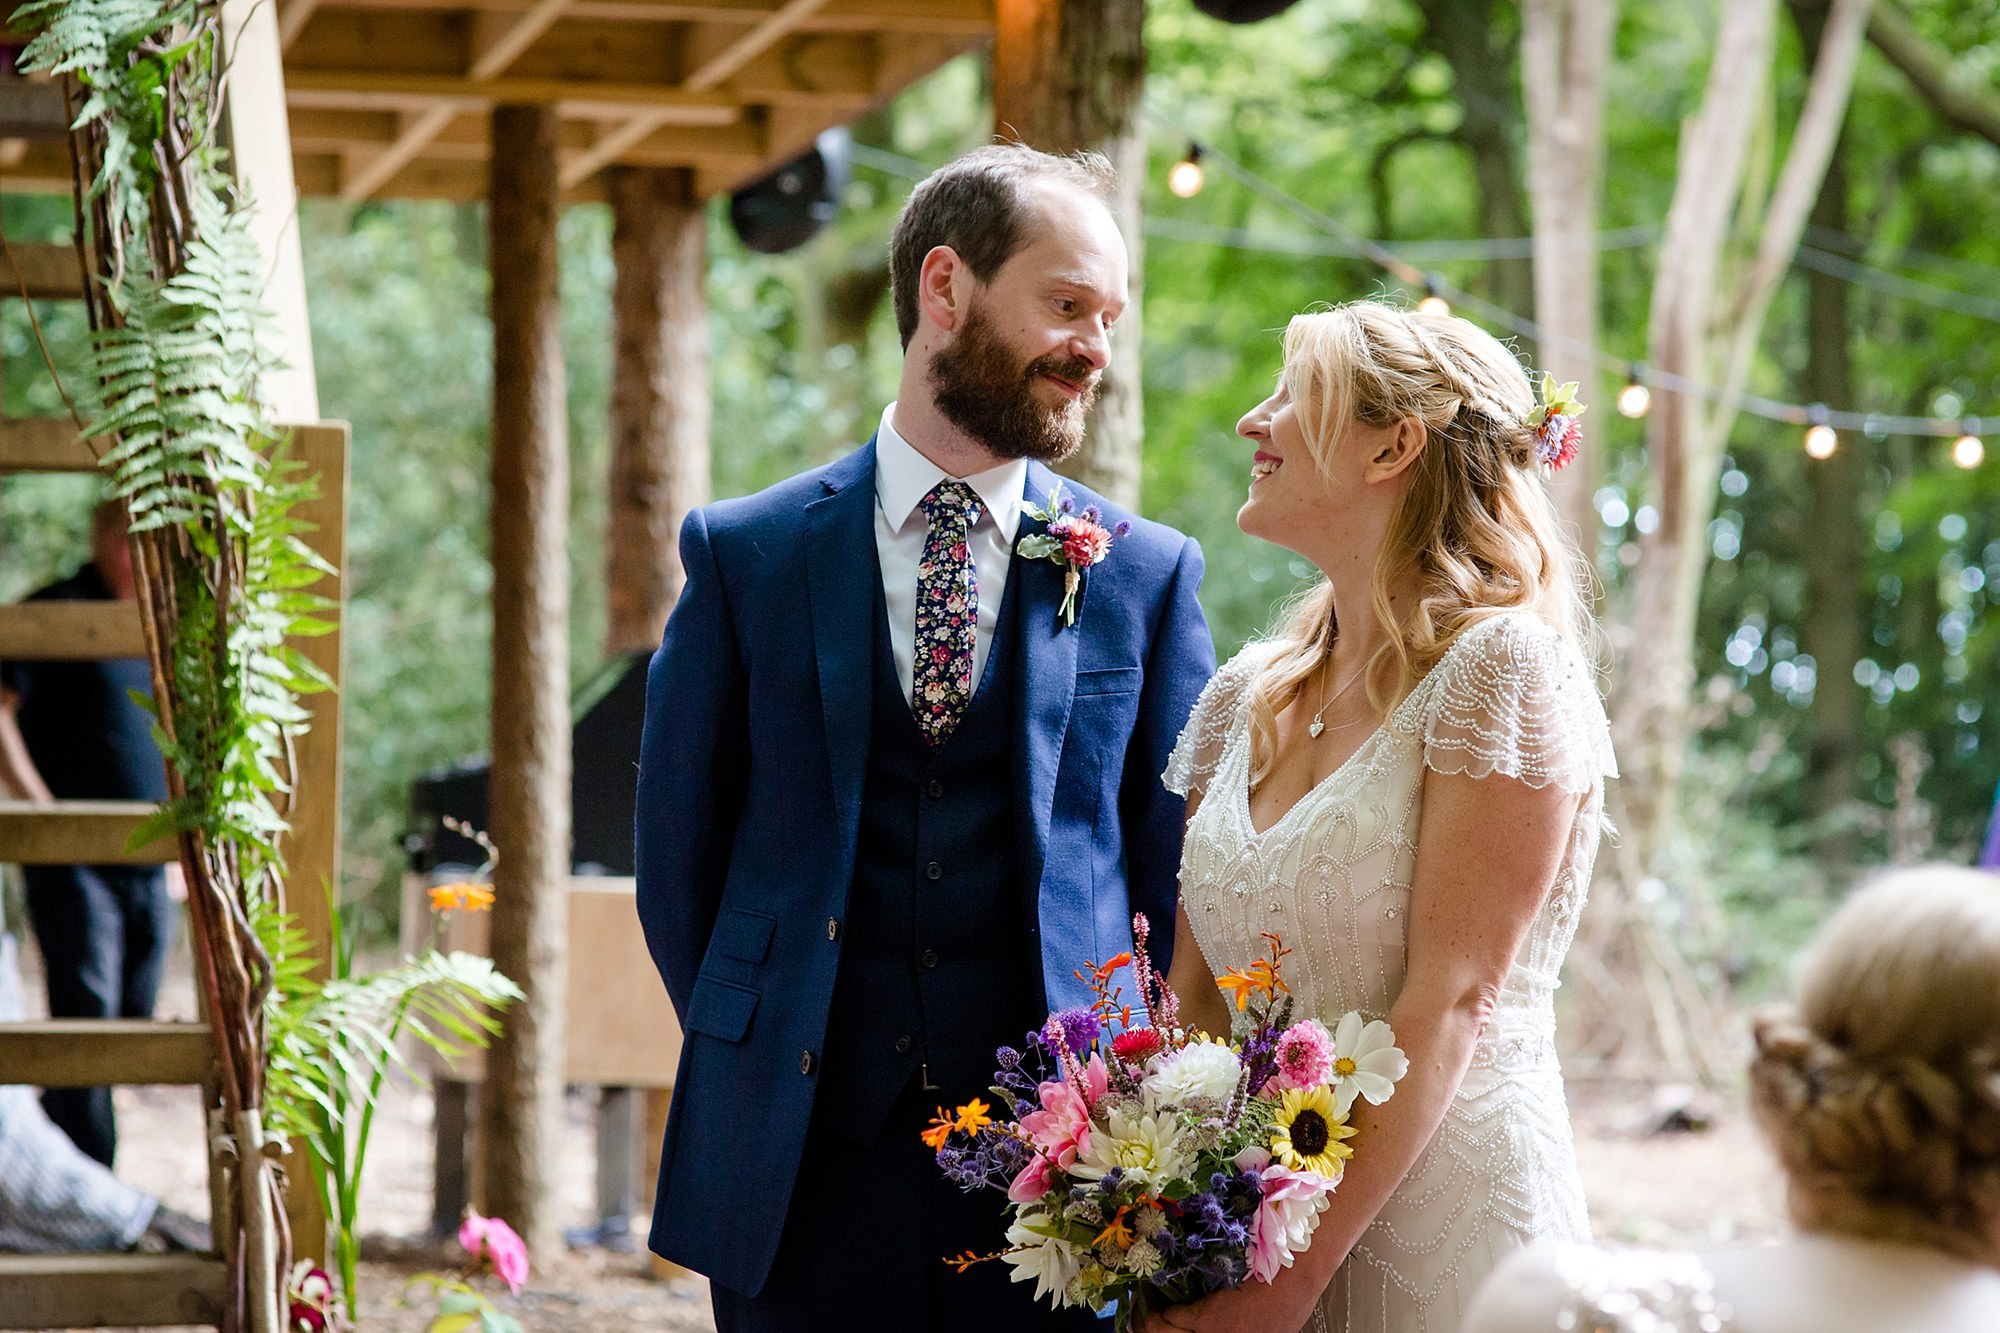 Woodland Weddings Tring bride and groom during reading